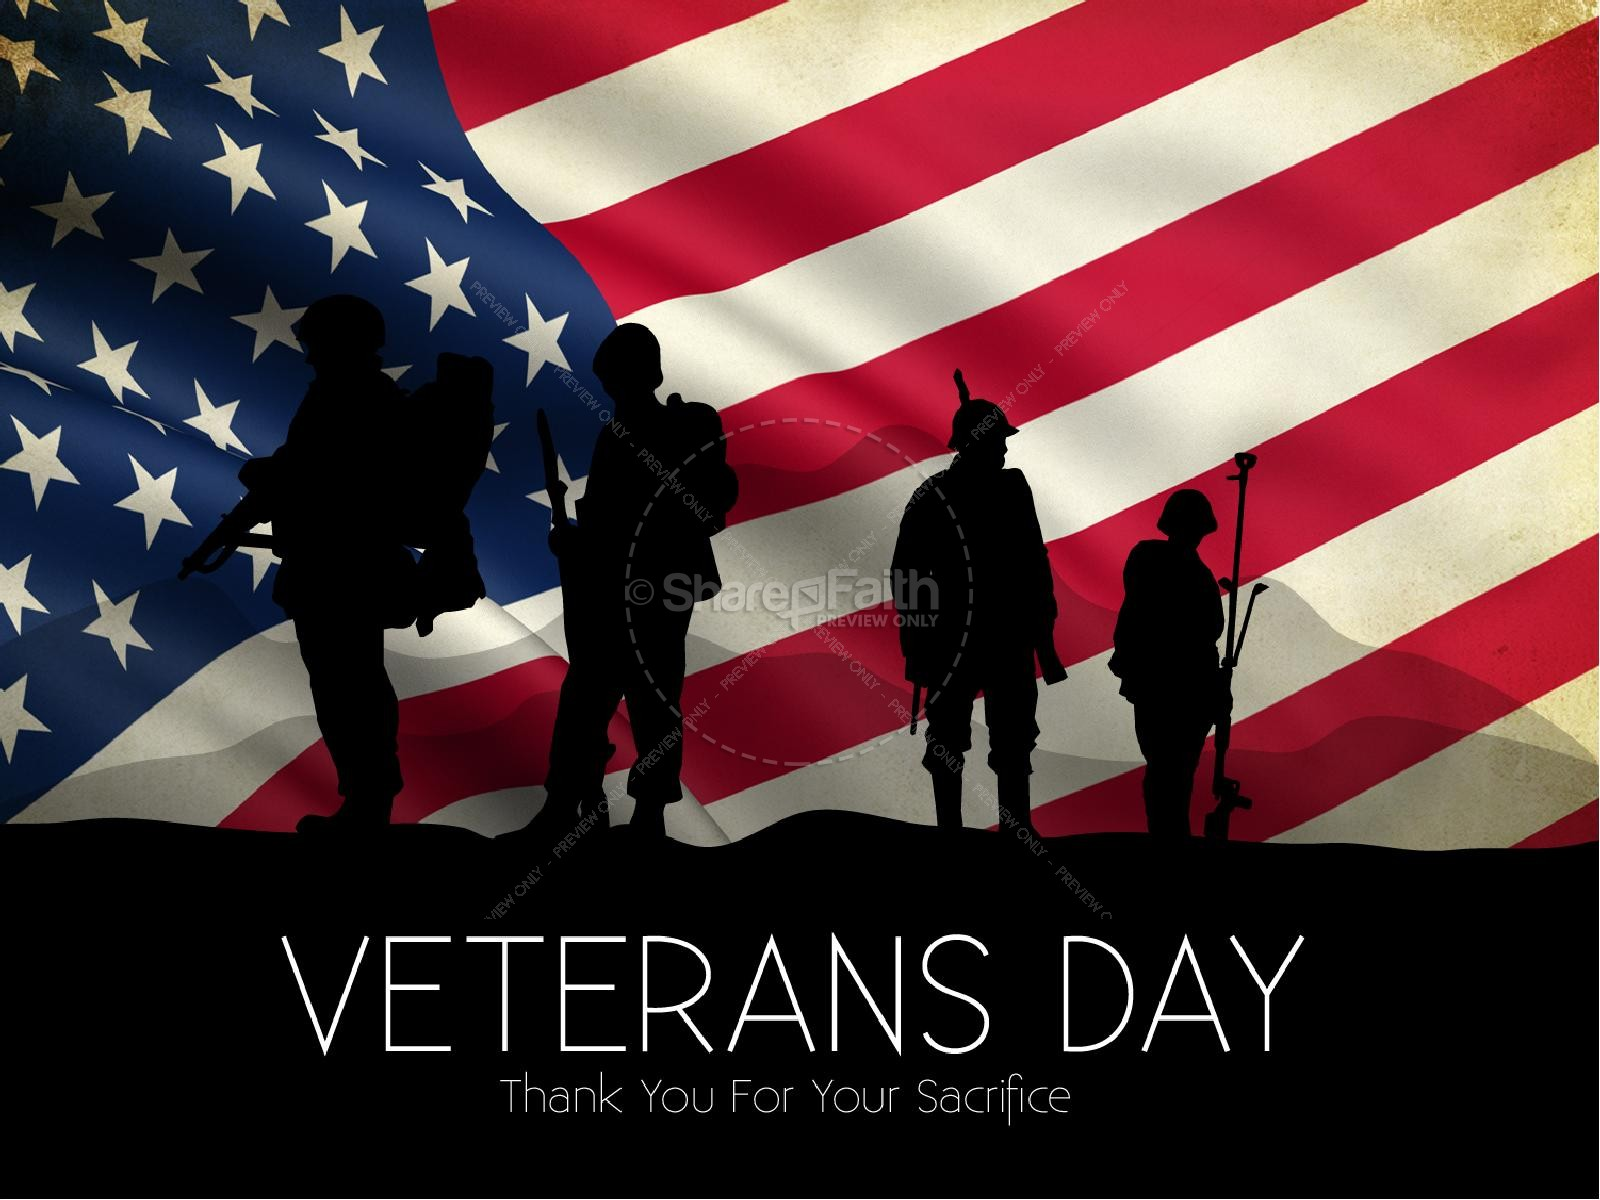 Veterans day powerpoint sermon powerpoint sermons veterans day powerpoint sermon toneelgroepblik Image collections